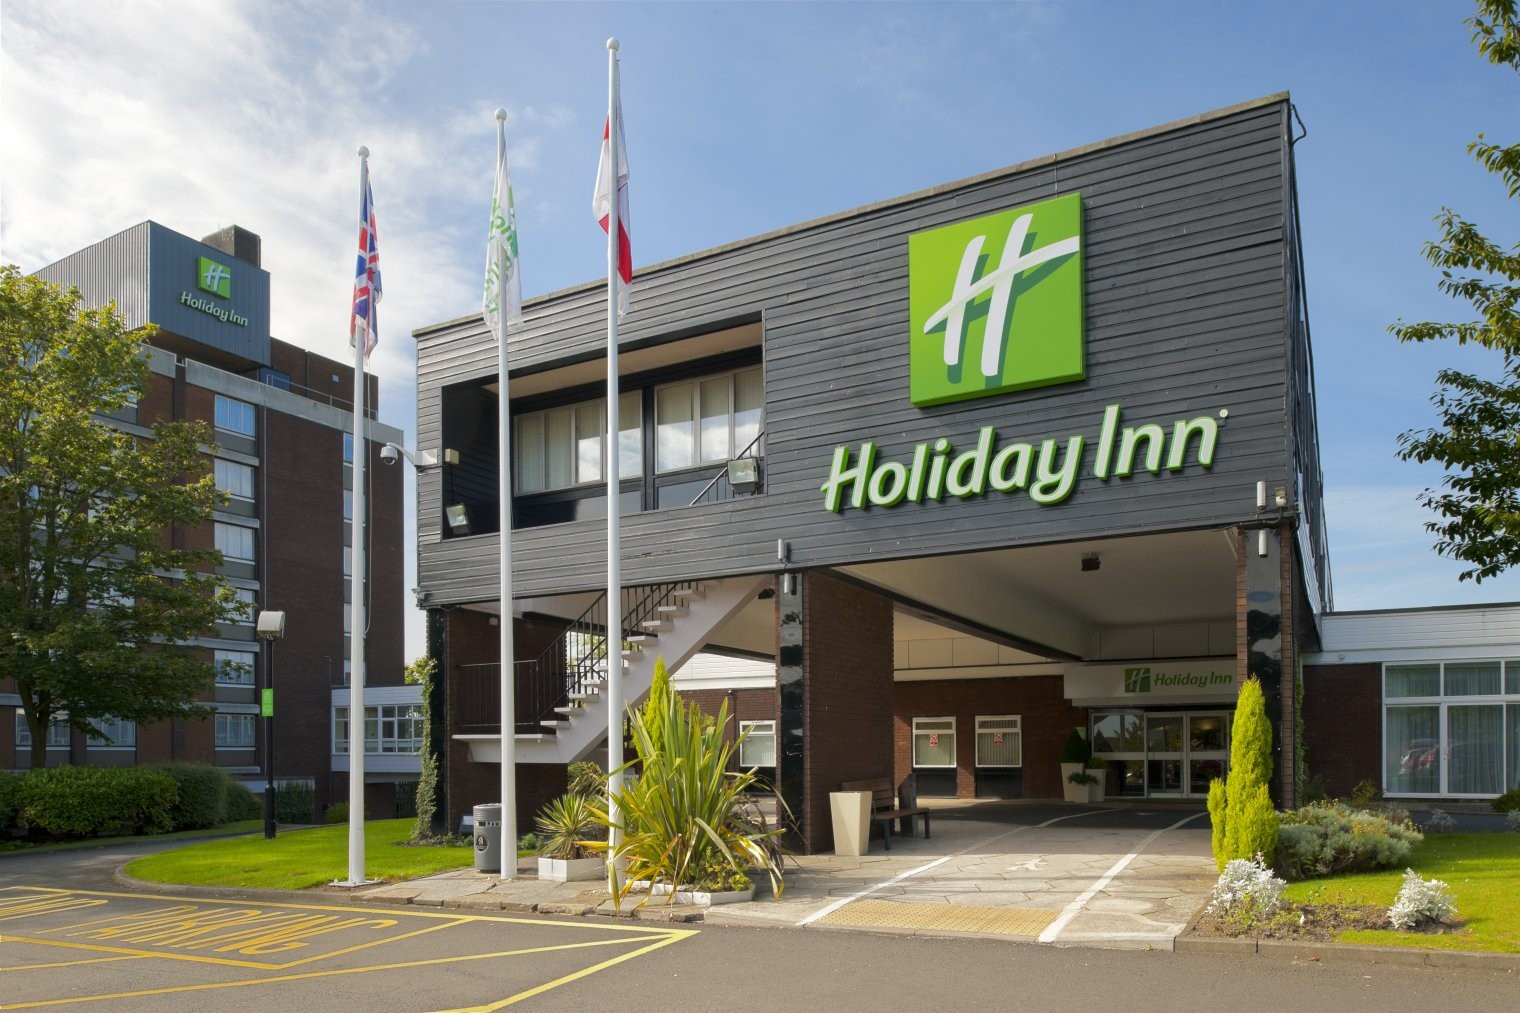 Picture of Holiday Inn Washington